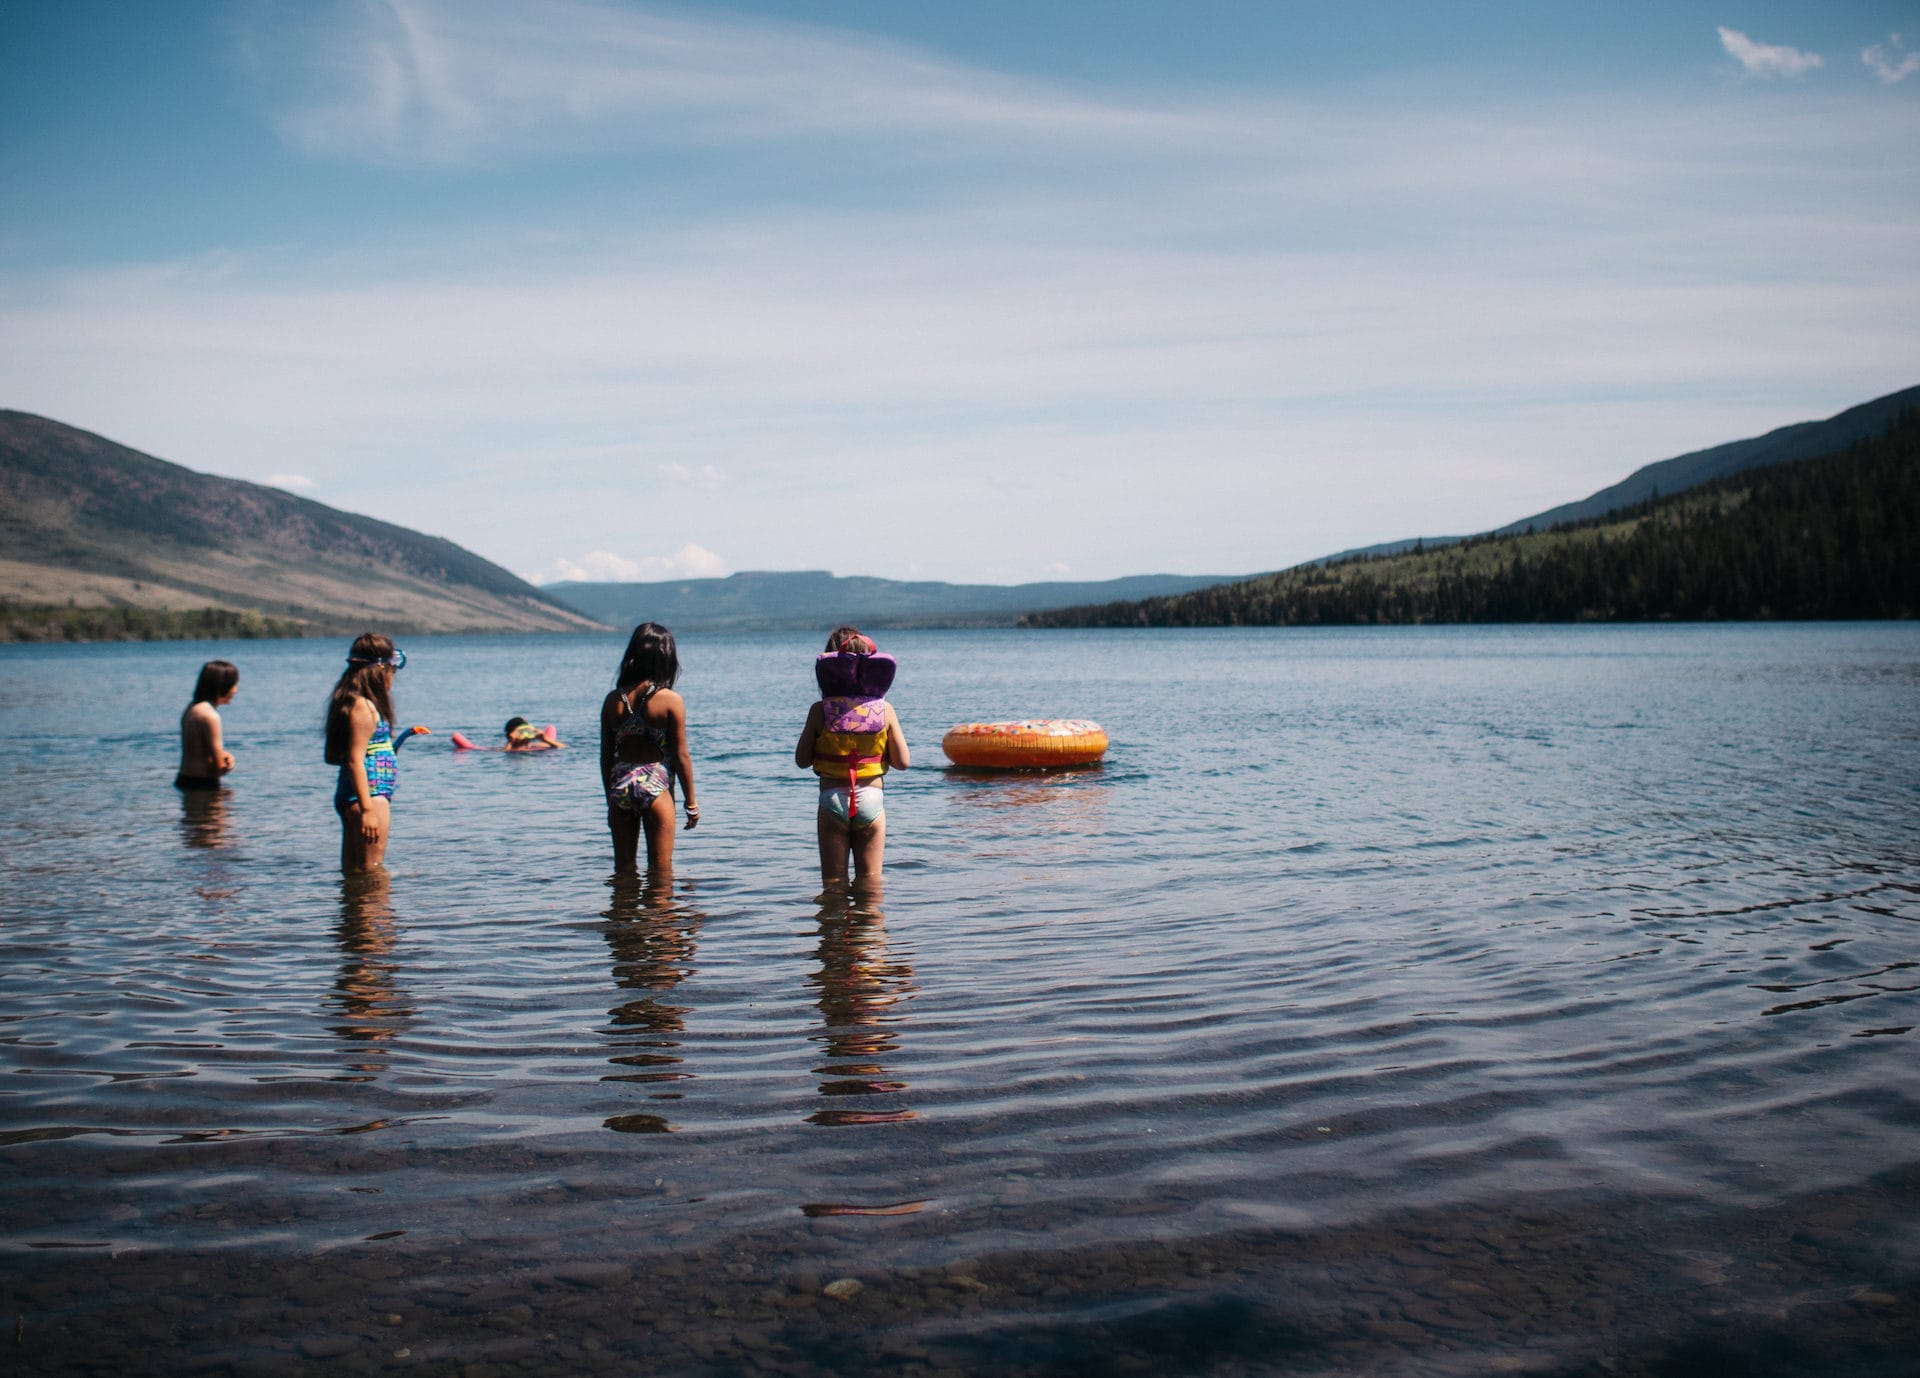 Nemiah Valley Konni Lake swimming Louis Bockner Taseko New Prosperity Tsilhqot'in Nation